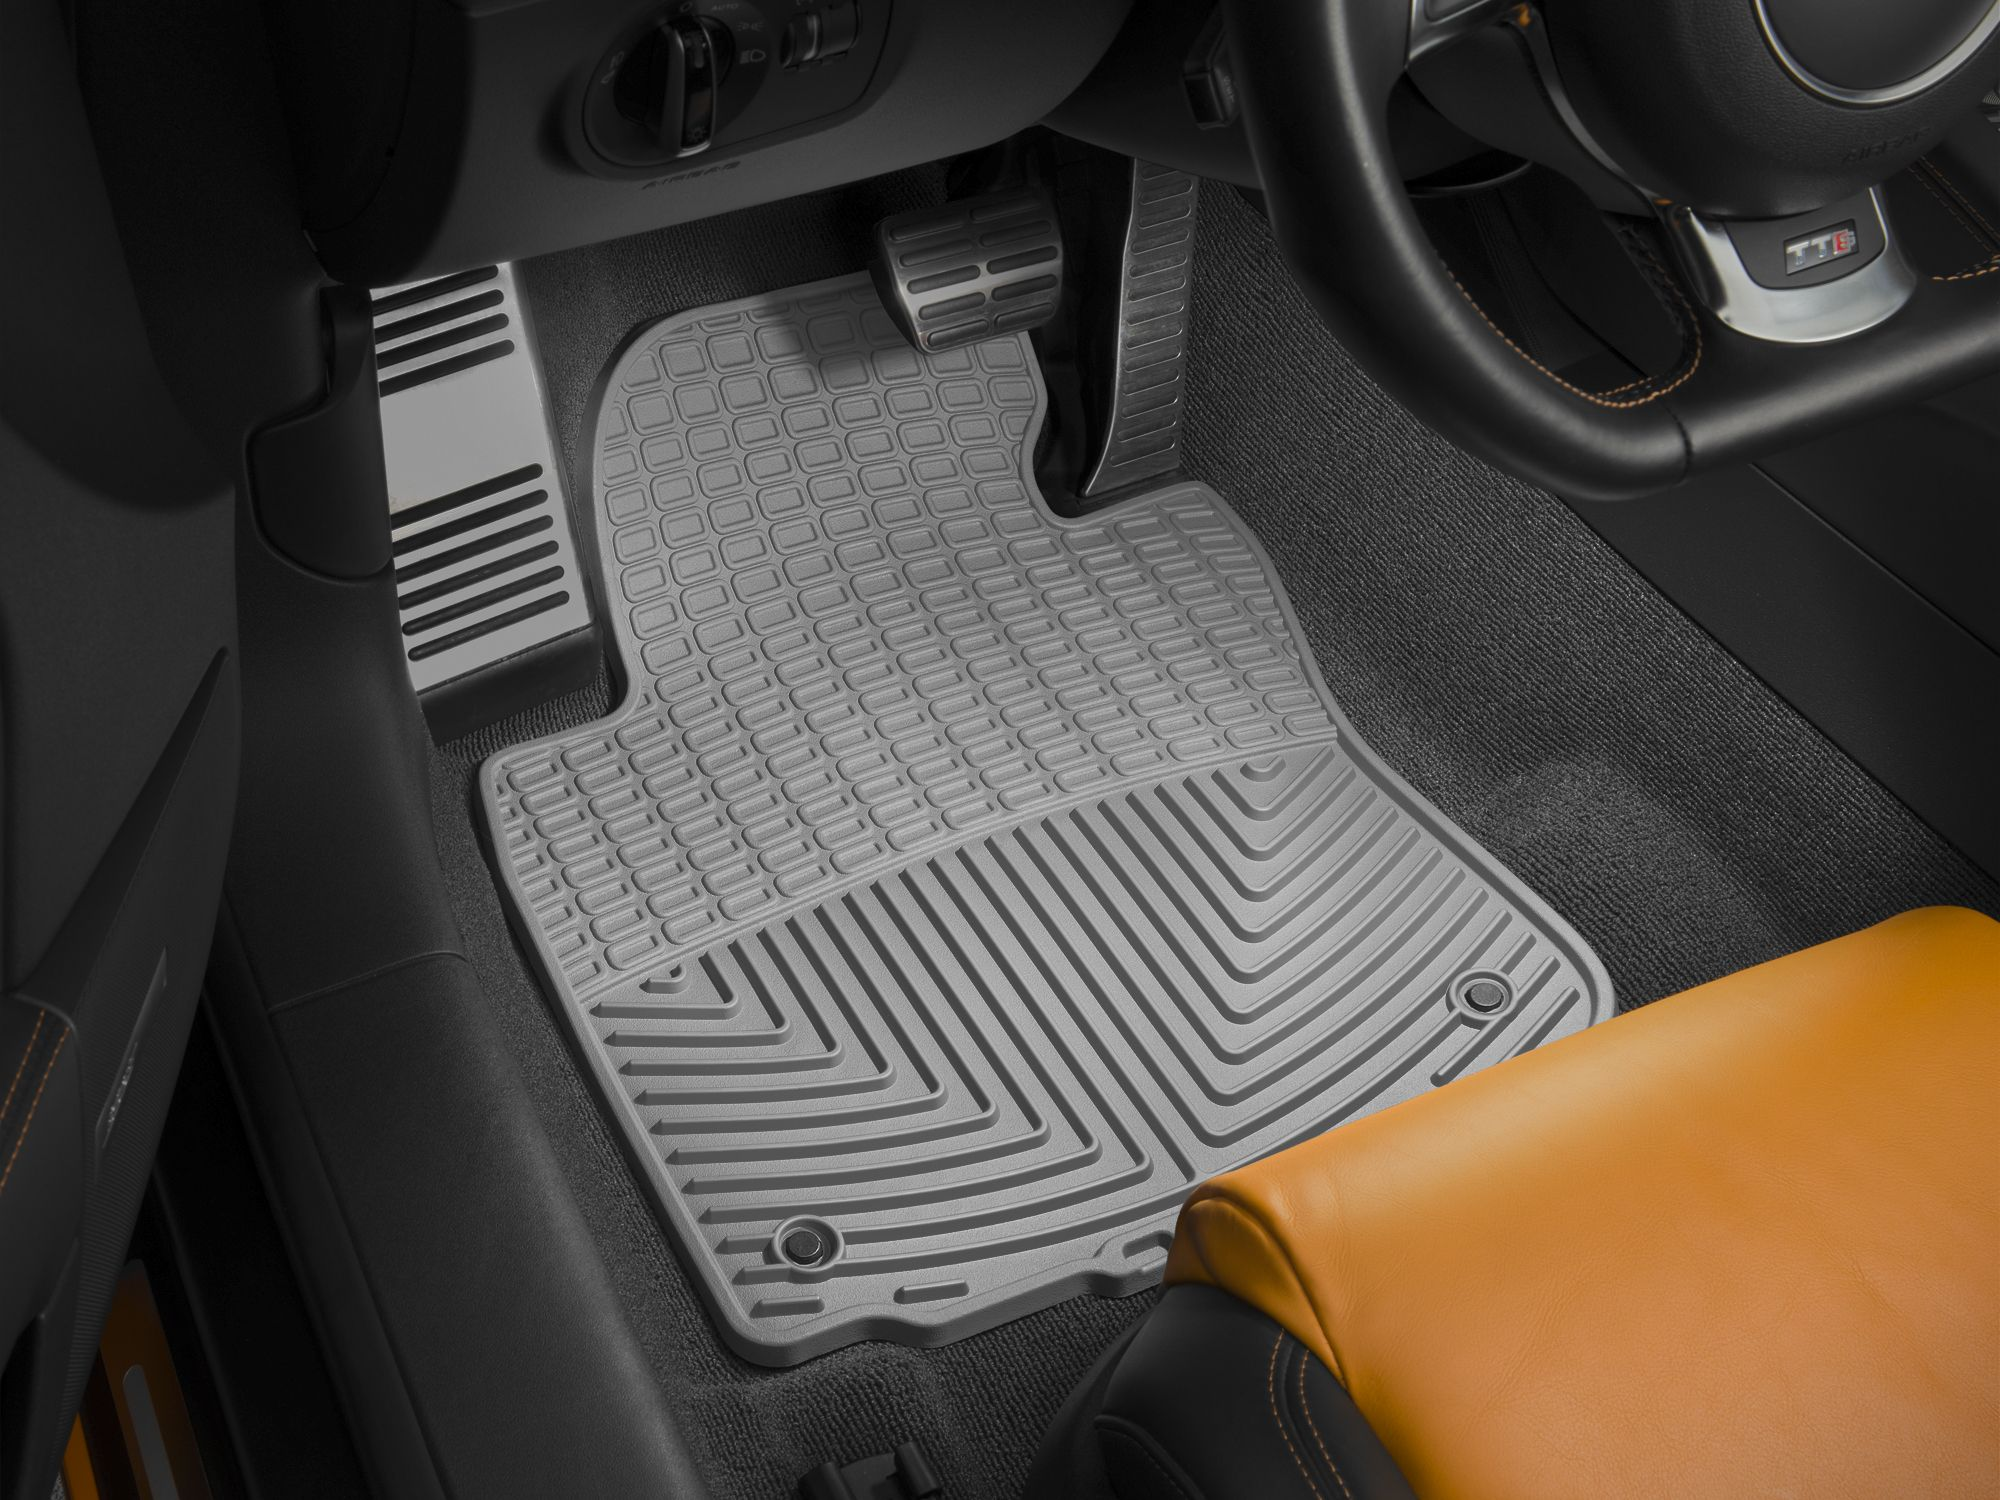 motorbike suzuki auto mats dp mat in maruti car of black for set foot amazon cars pearl baleno rubber floor